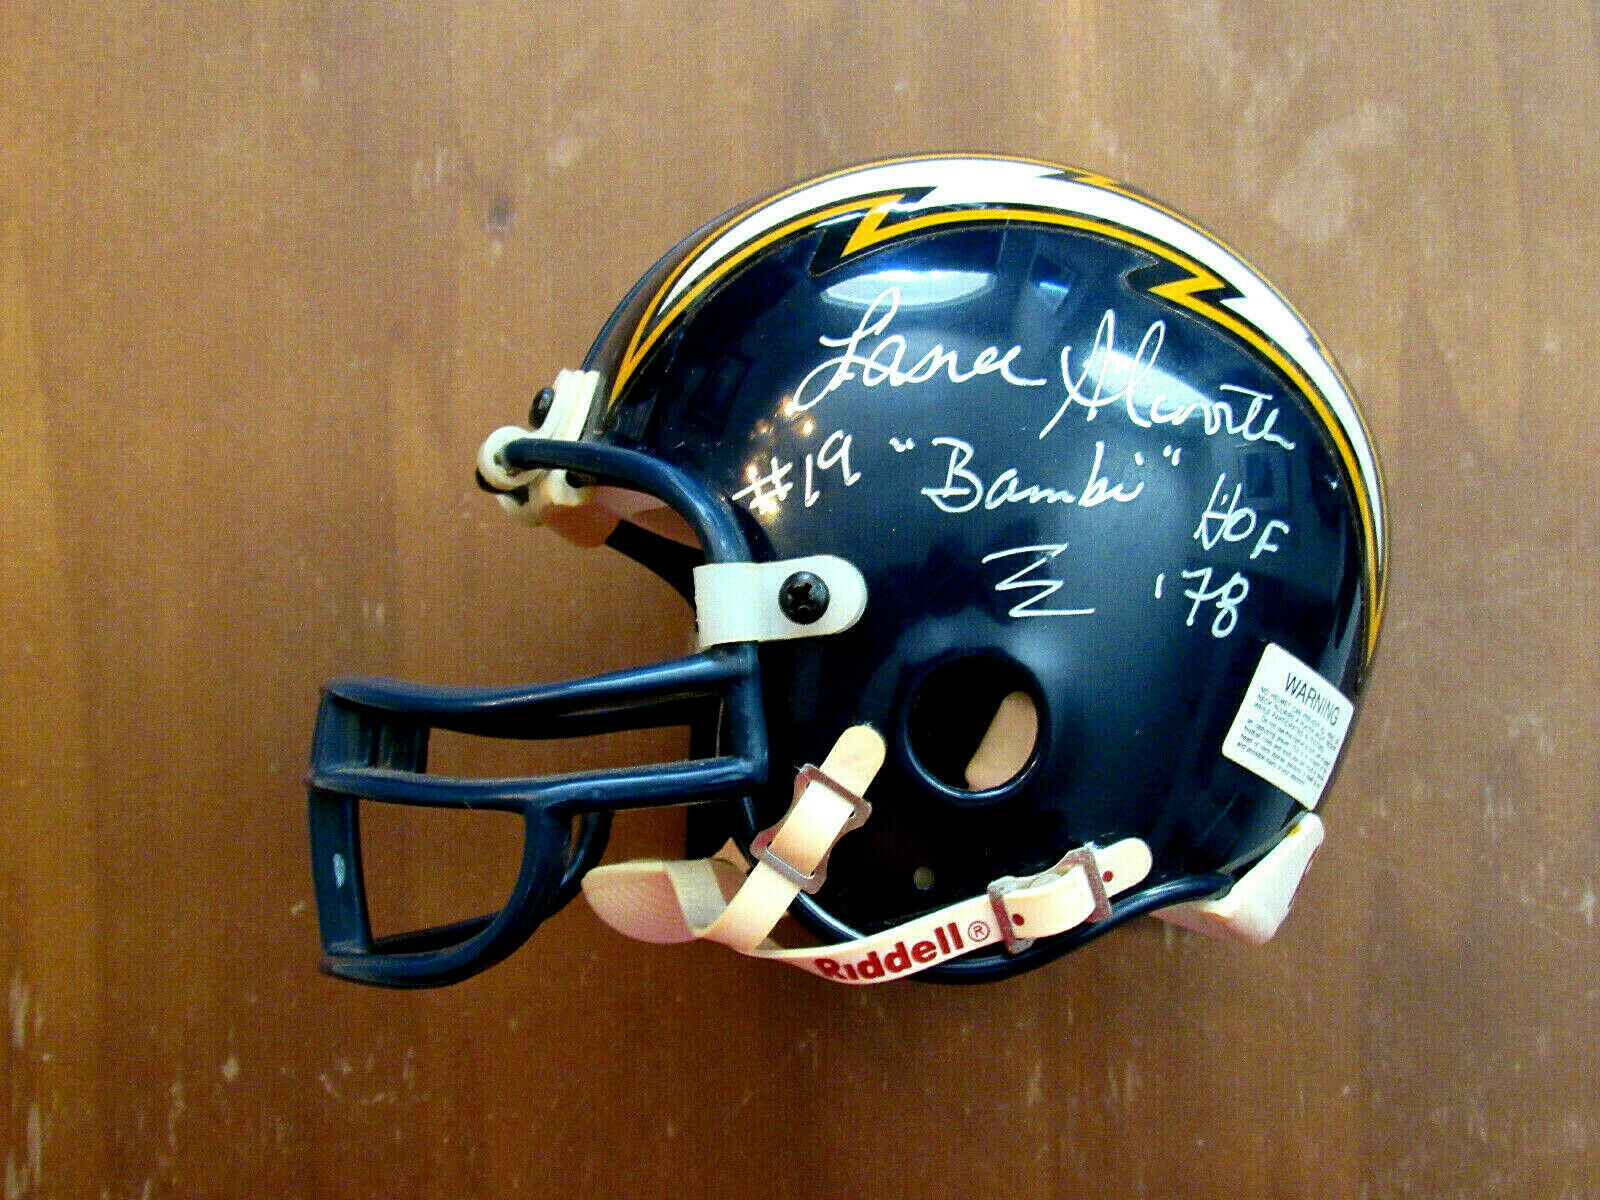 Primary image for LANCE ALWORTH # 19 BAMBI HOF CHARGERS SIGNED AUTO MINI RIDDELL HELMET JSA BEAUTY